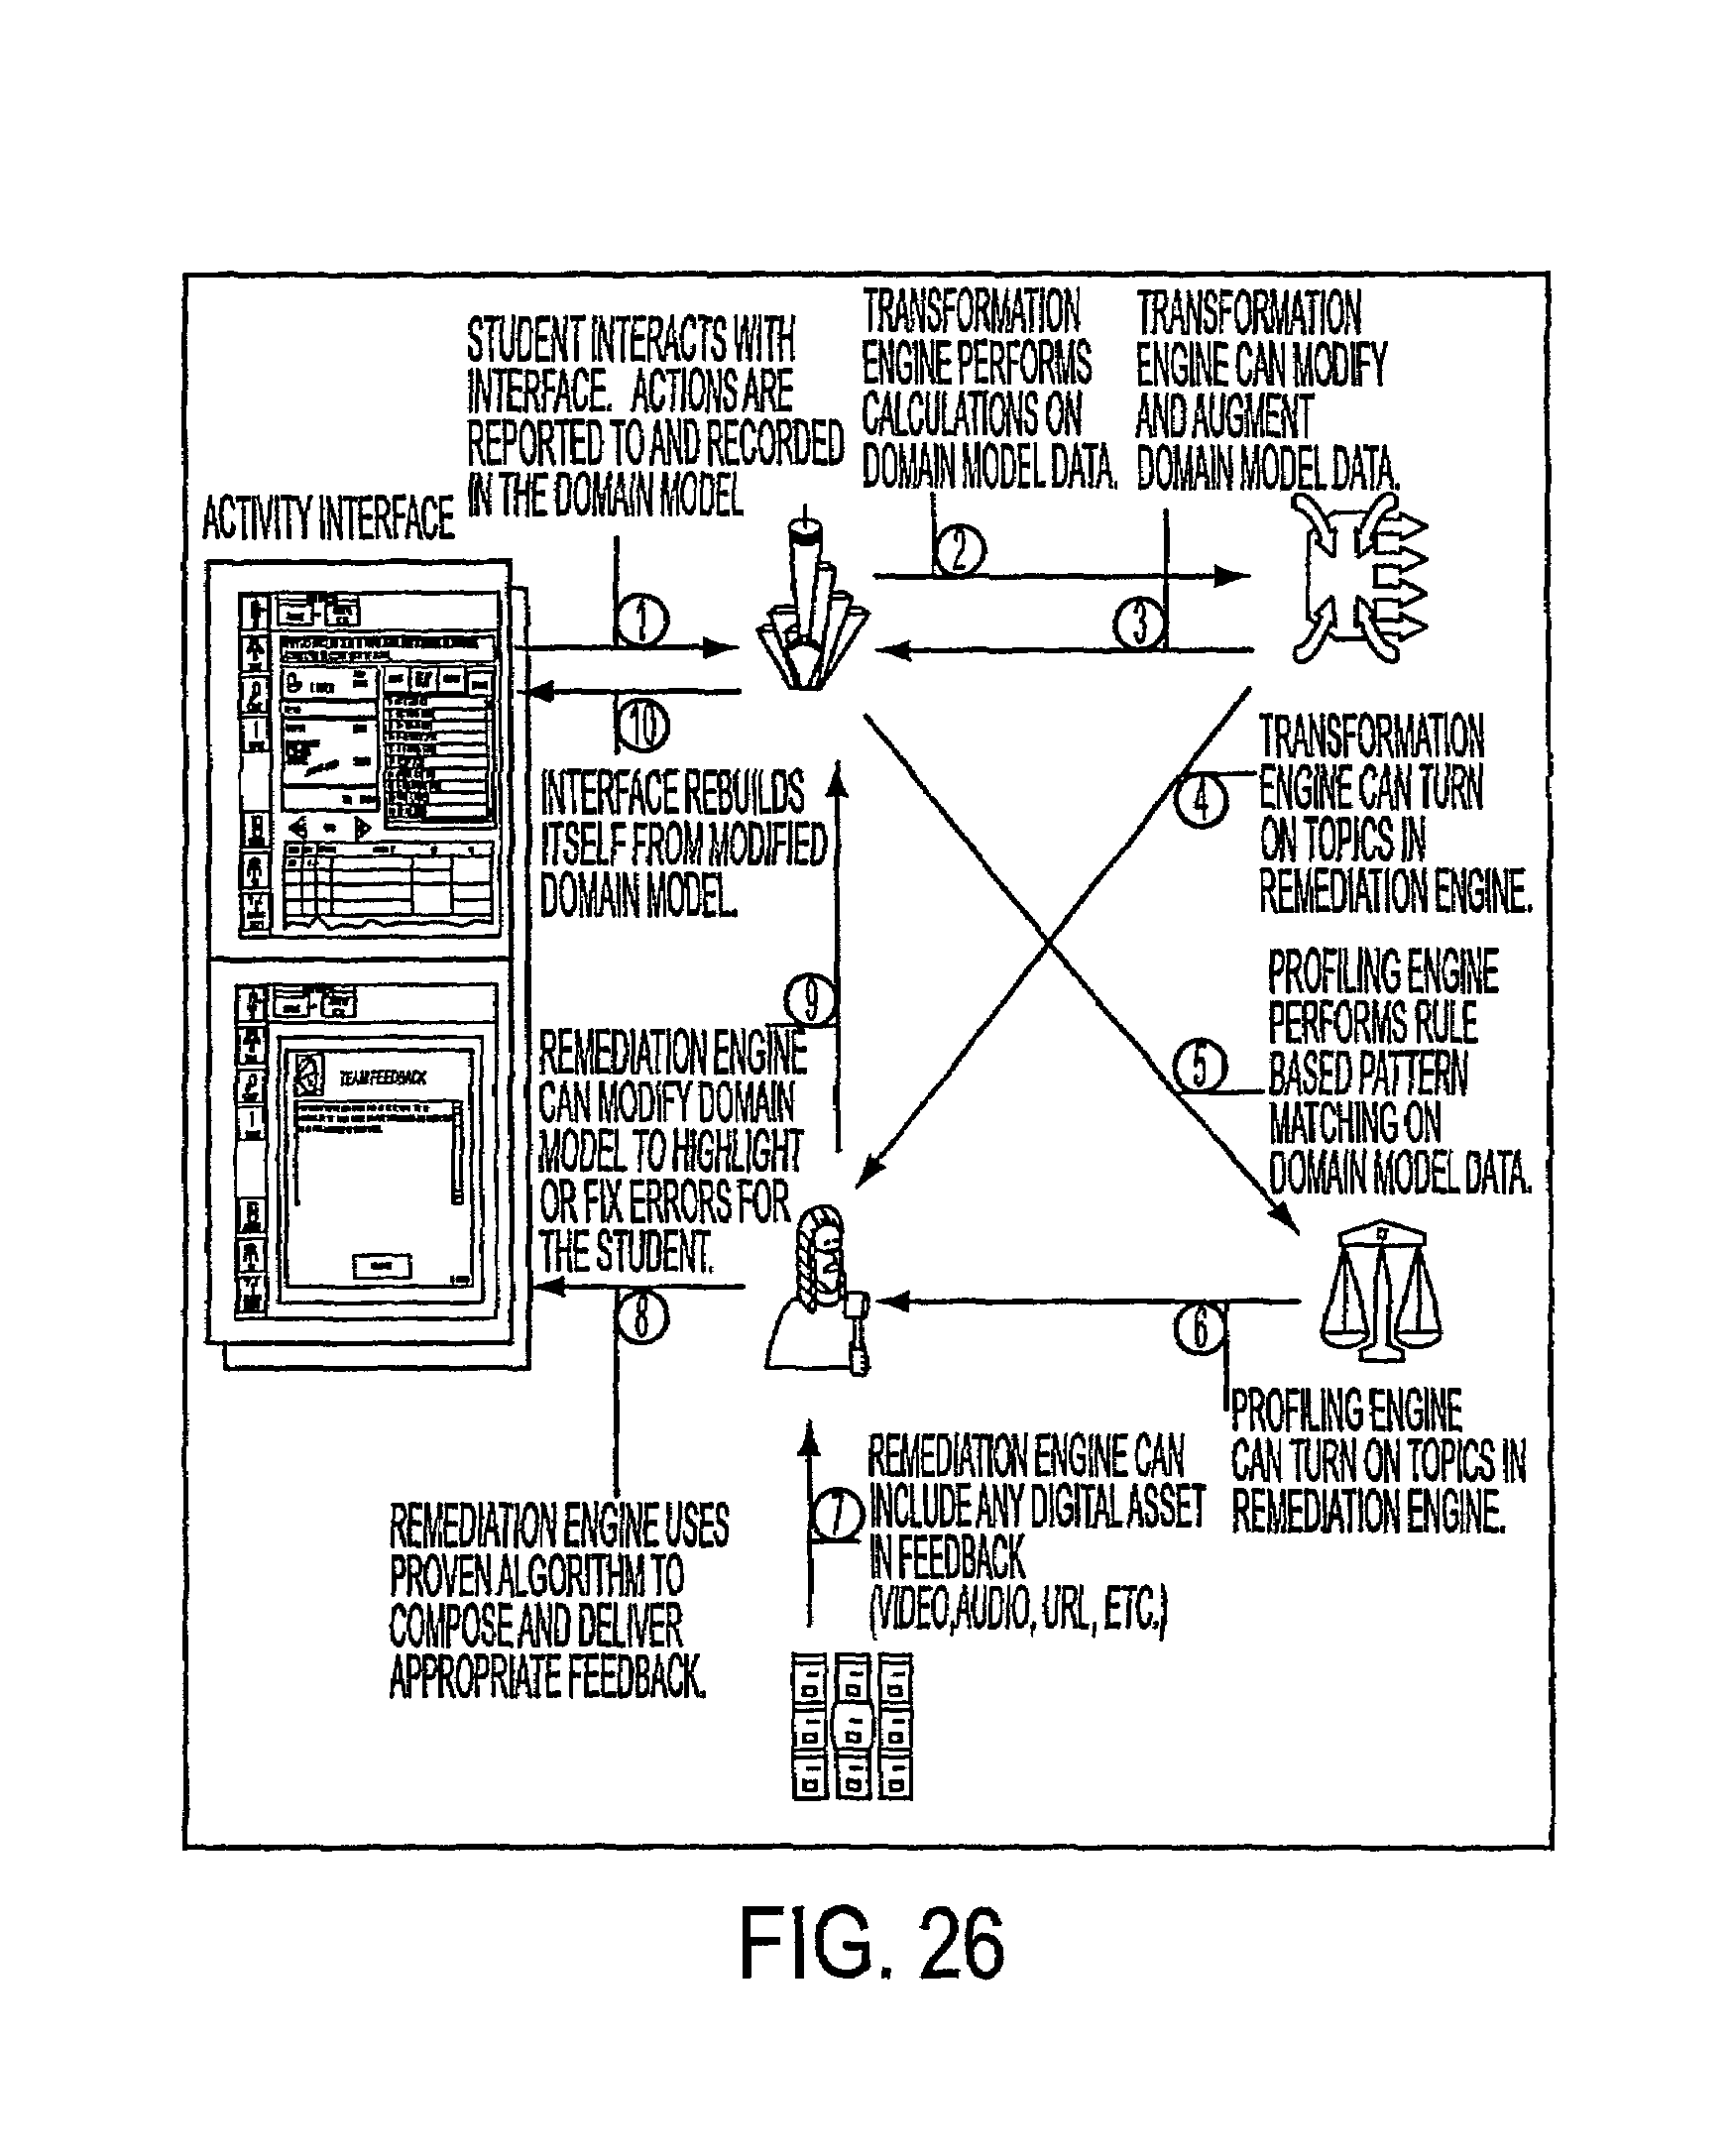 Wiring Diagram For Ford 5640 Tractor. Ford. Auto Wiring